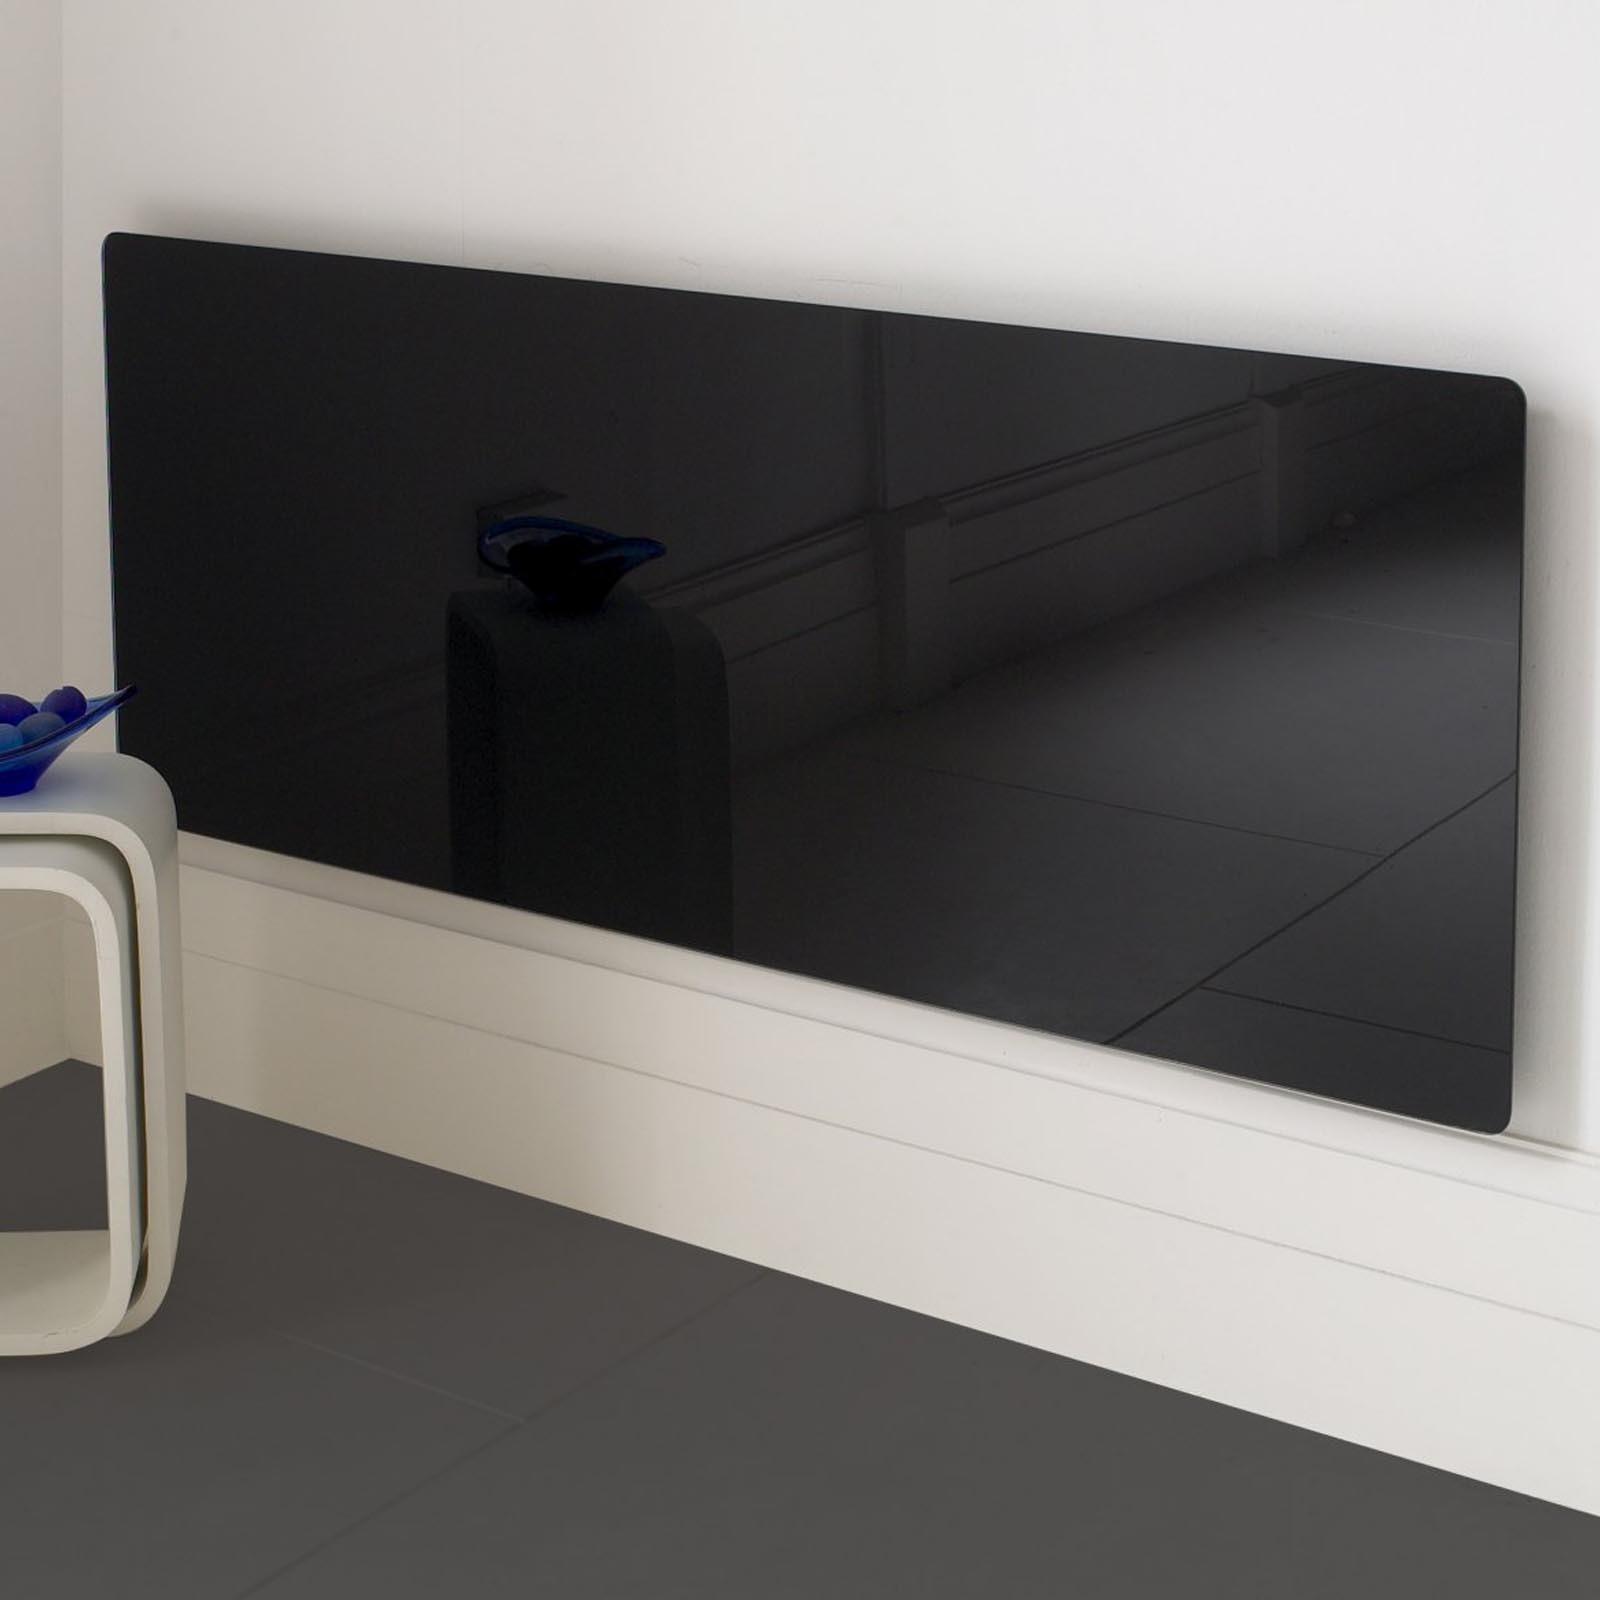 Great Deals Adam Vitreo Large Black Glass Radiator Cover Free Uk Delivery